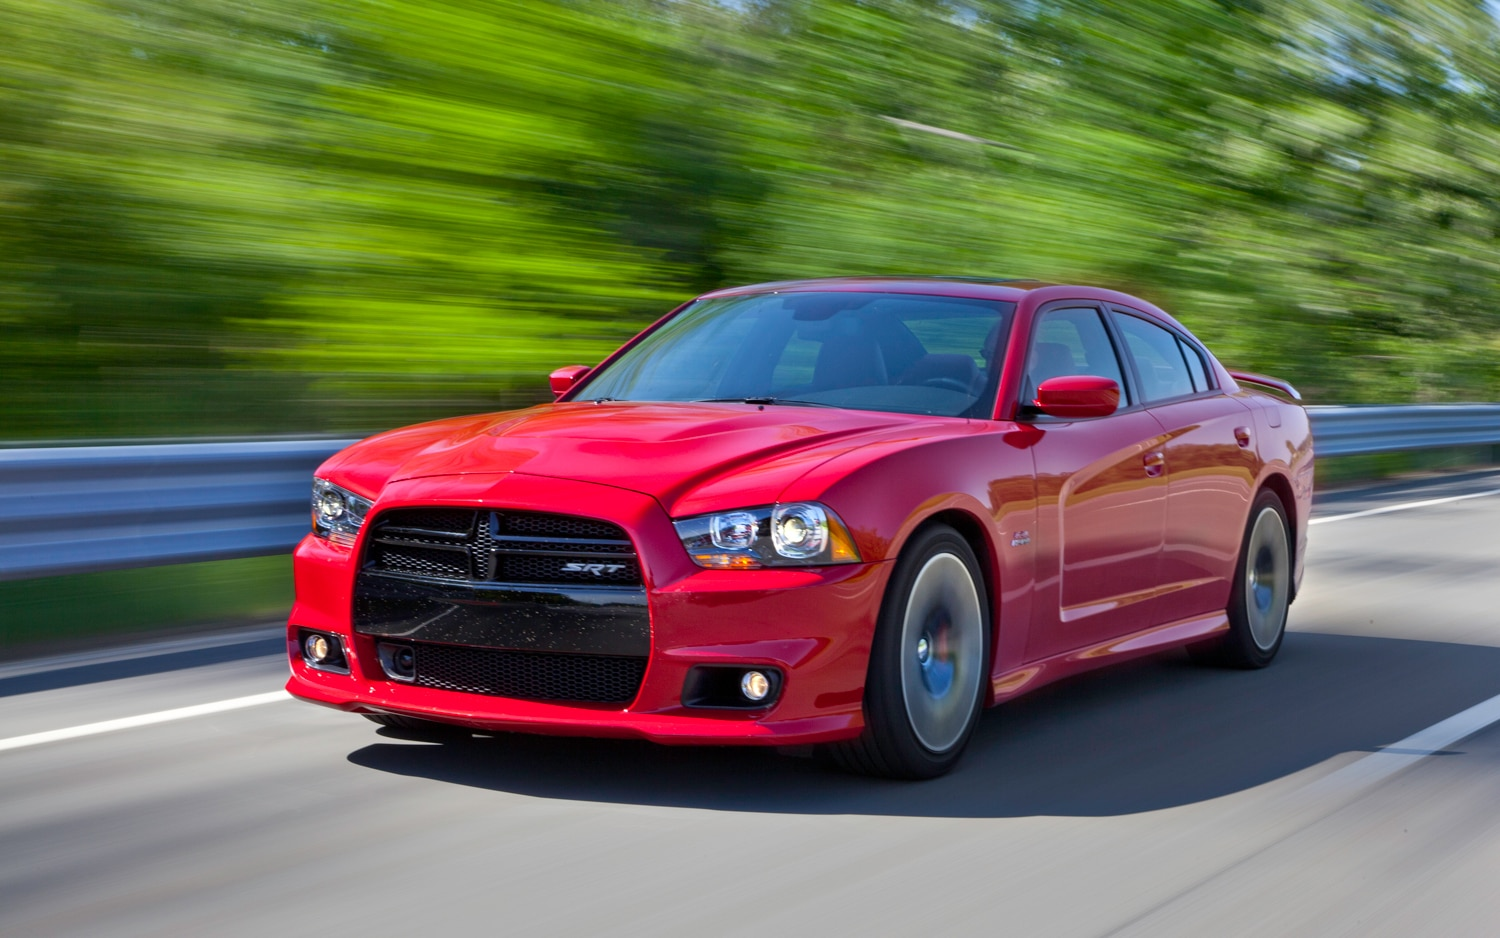 2012 dodge charger srt8 super bee editors 39 notebook automobile magazine. Black Bedroom Furniture Sets. Home Design Ideas